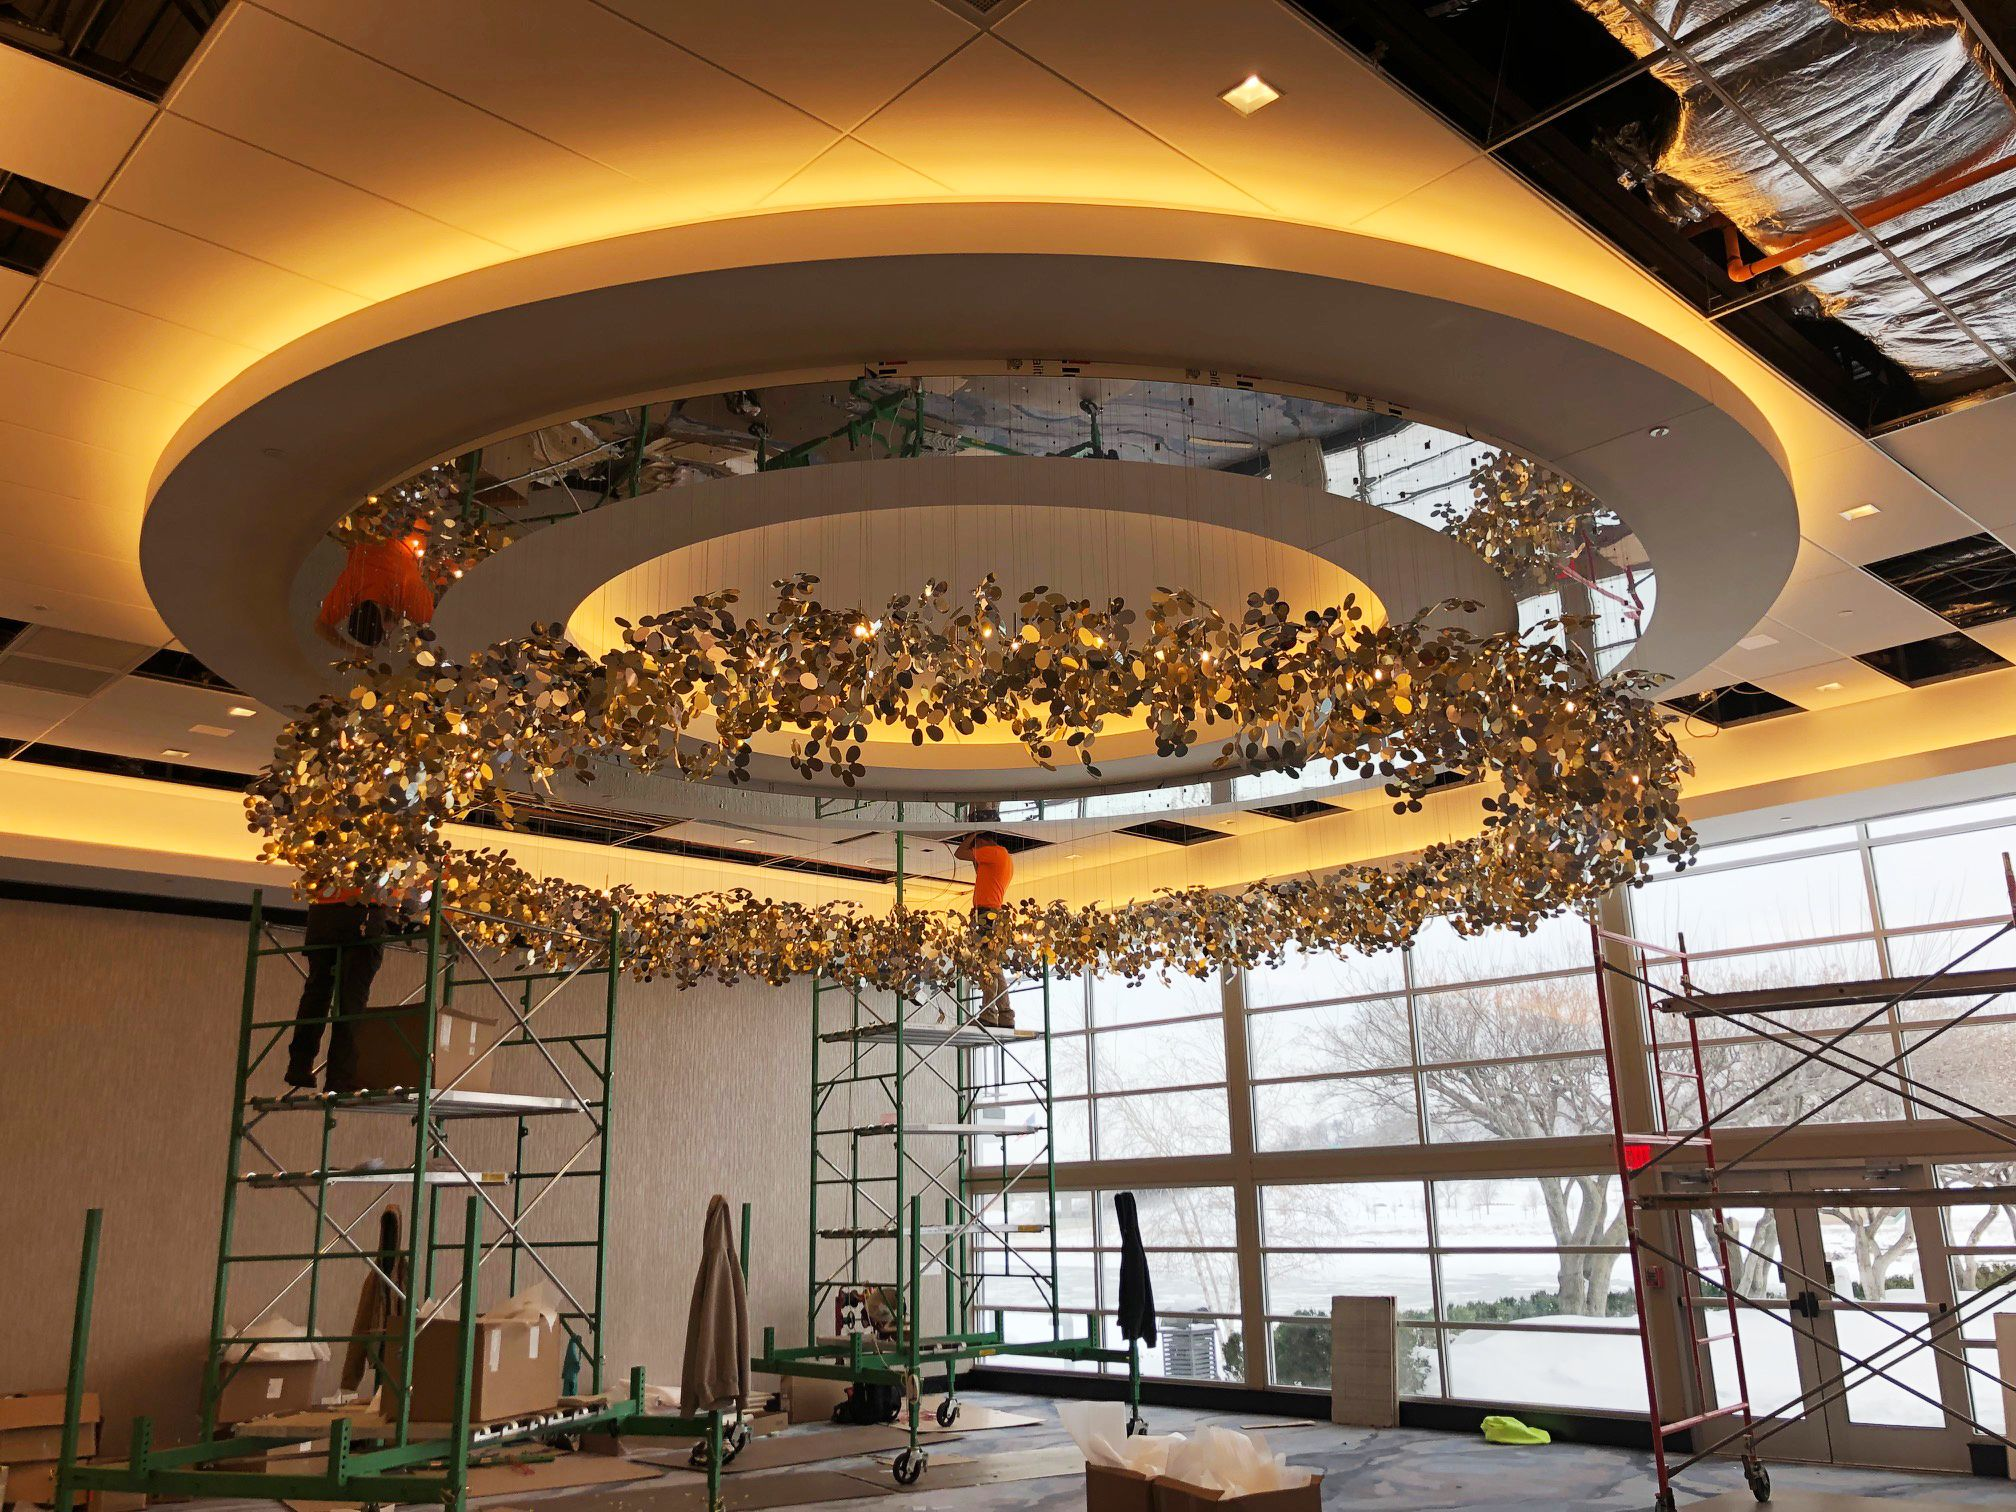 9c94cf4d1 ... Yellow Goat Design. Our Arboreal fixture at Delta by Marriott South  Sioux City!